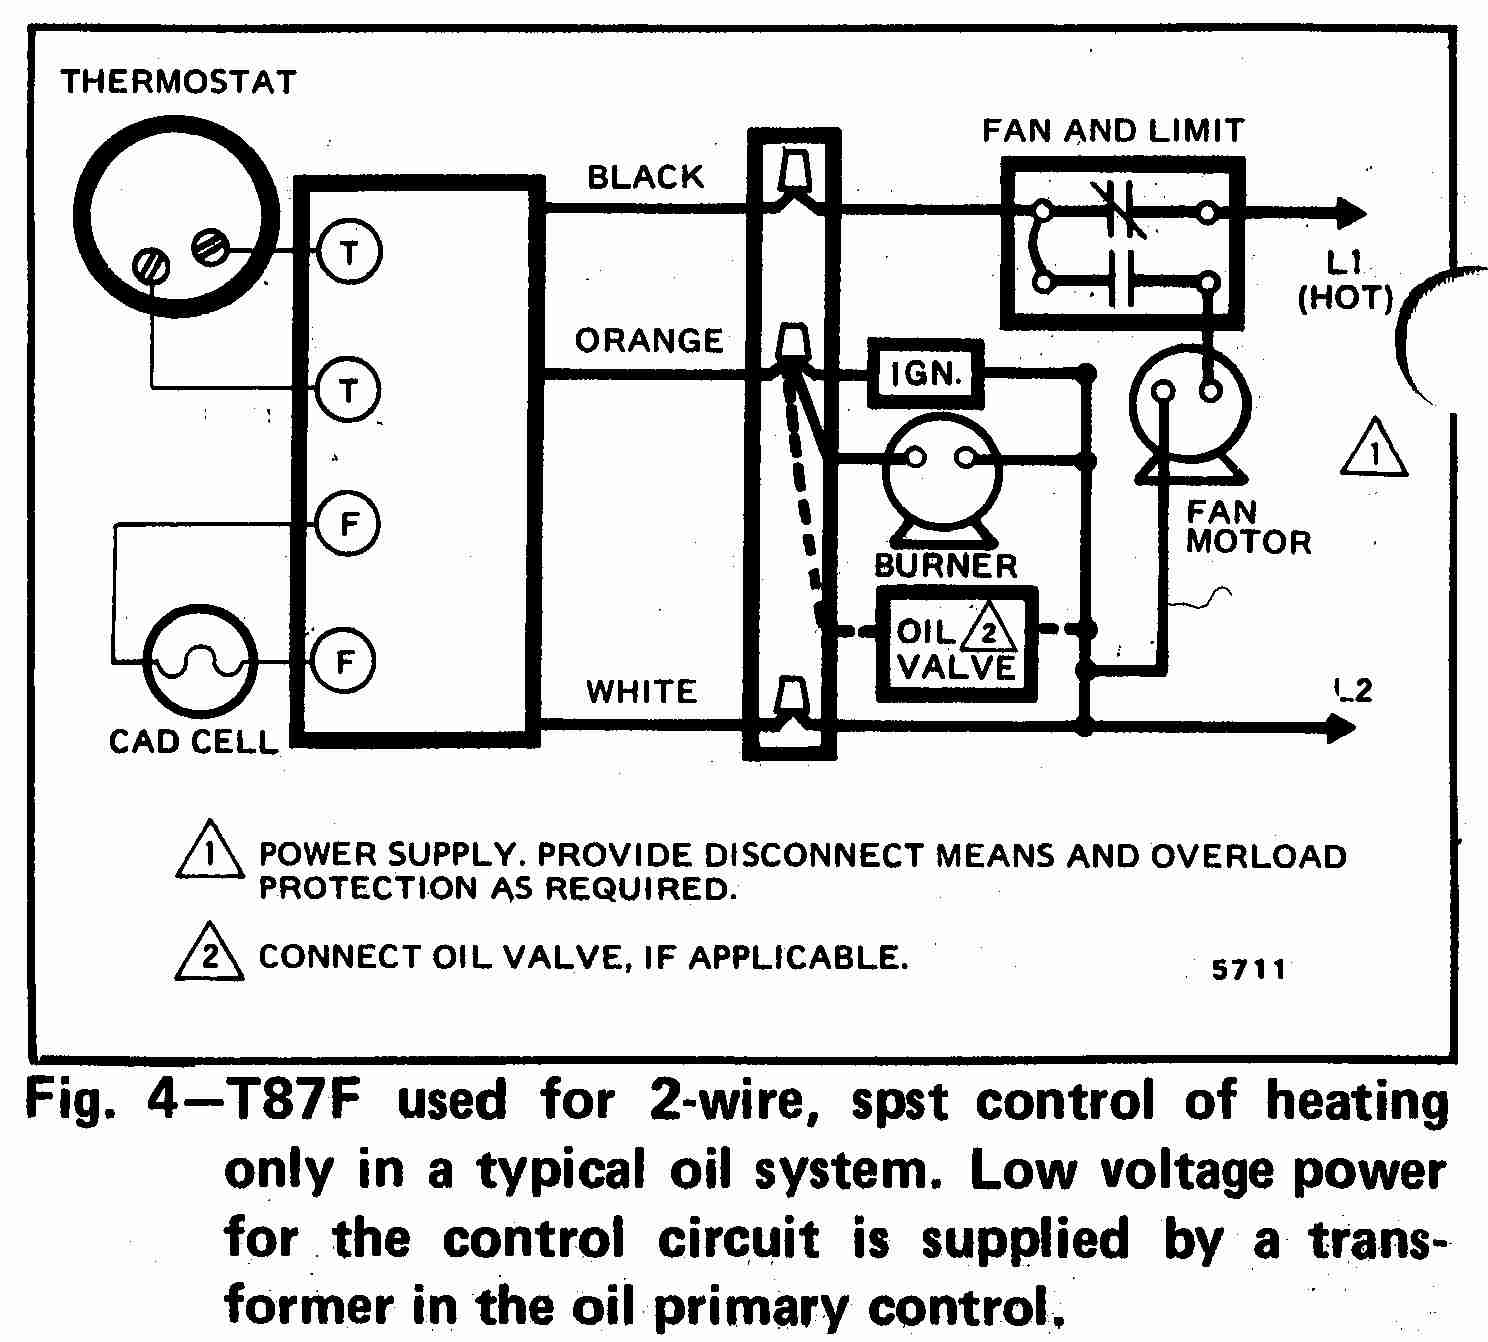 TT_T87F_0002_2W_DJF room thermostat wiring diagrams for hvac systems hvac wiring diagram at et-consult.org